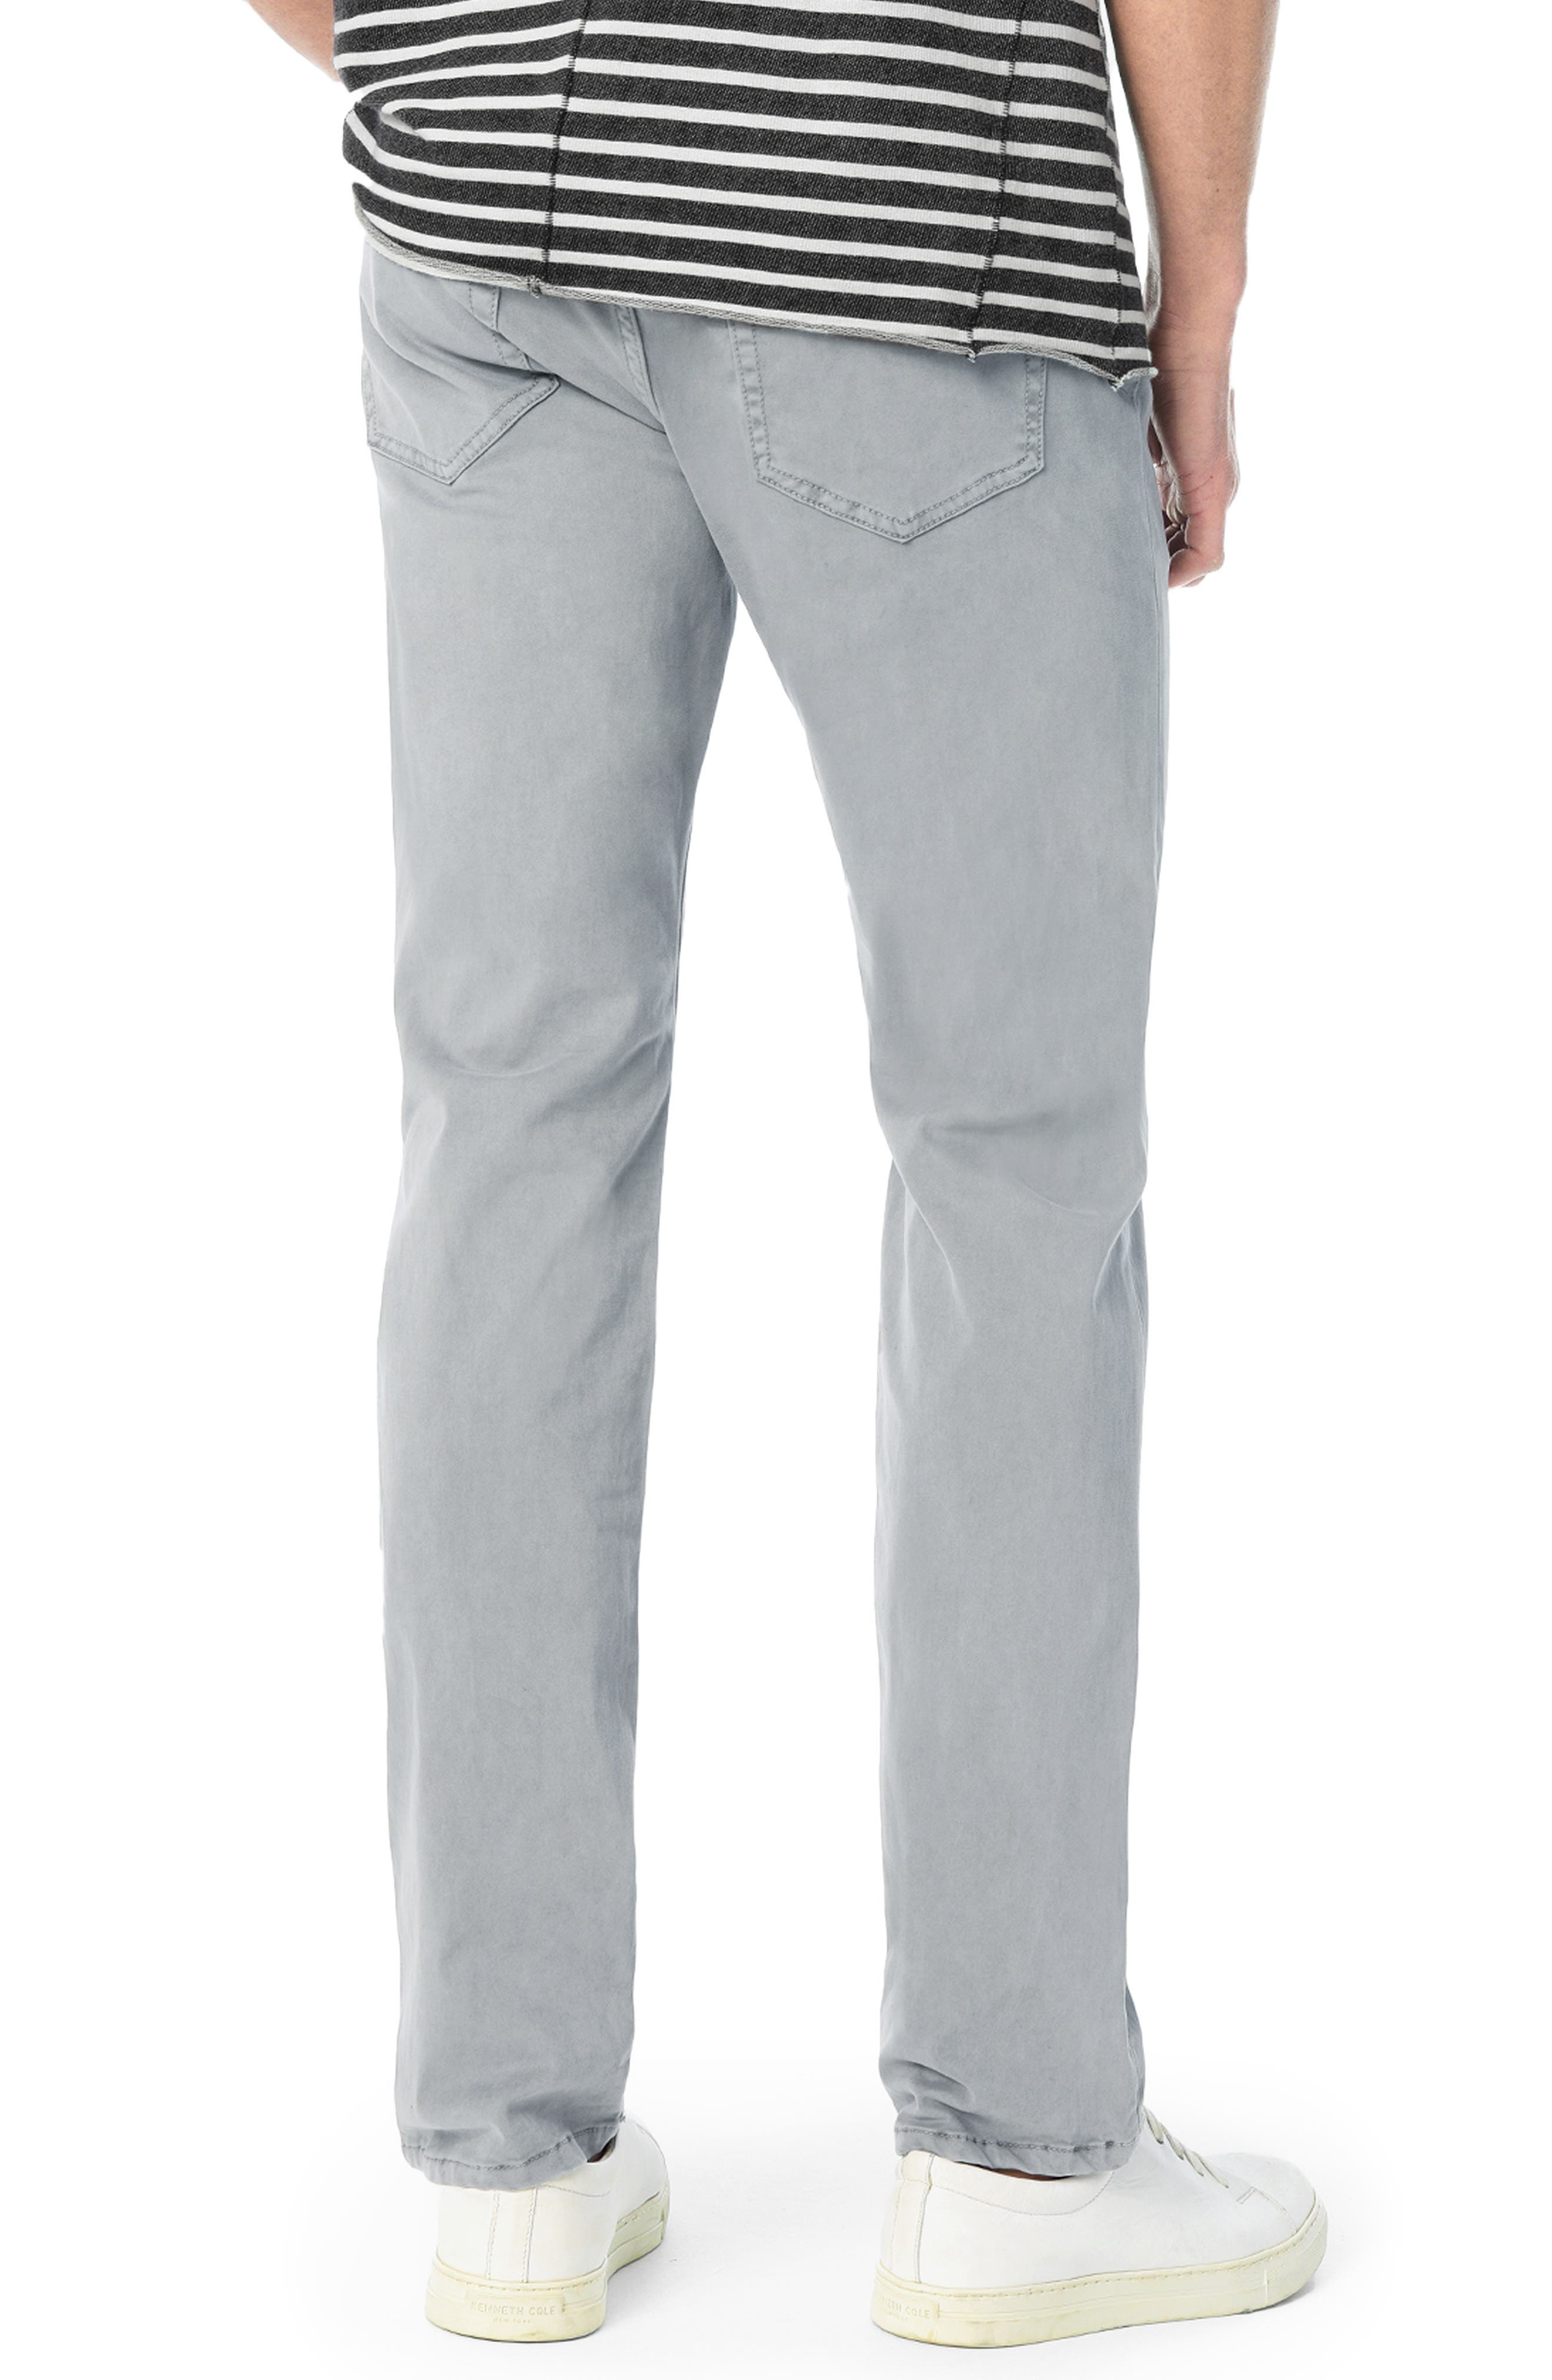 Brixton Slim Straight Chinos,                             Alternate thumbnail 2, color,                             FEATHER